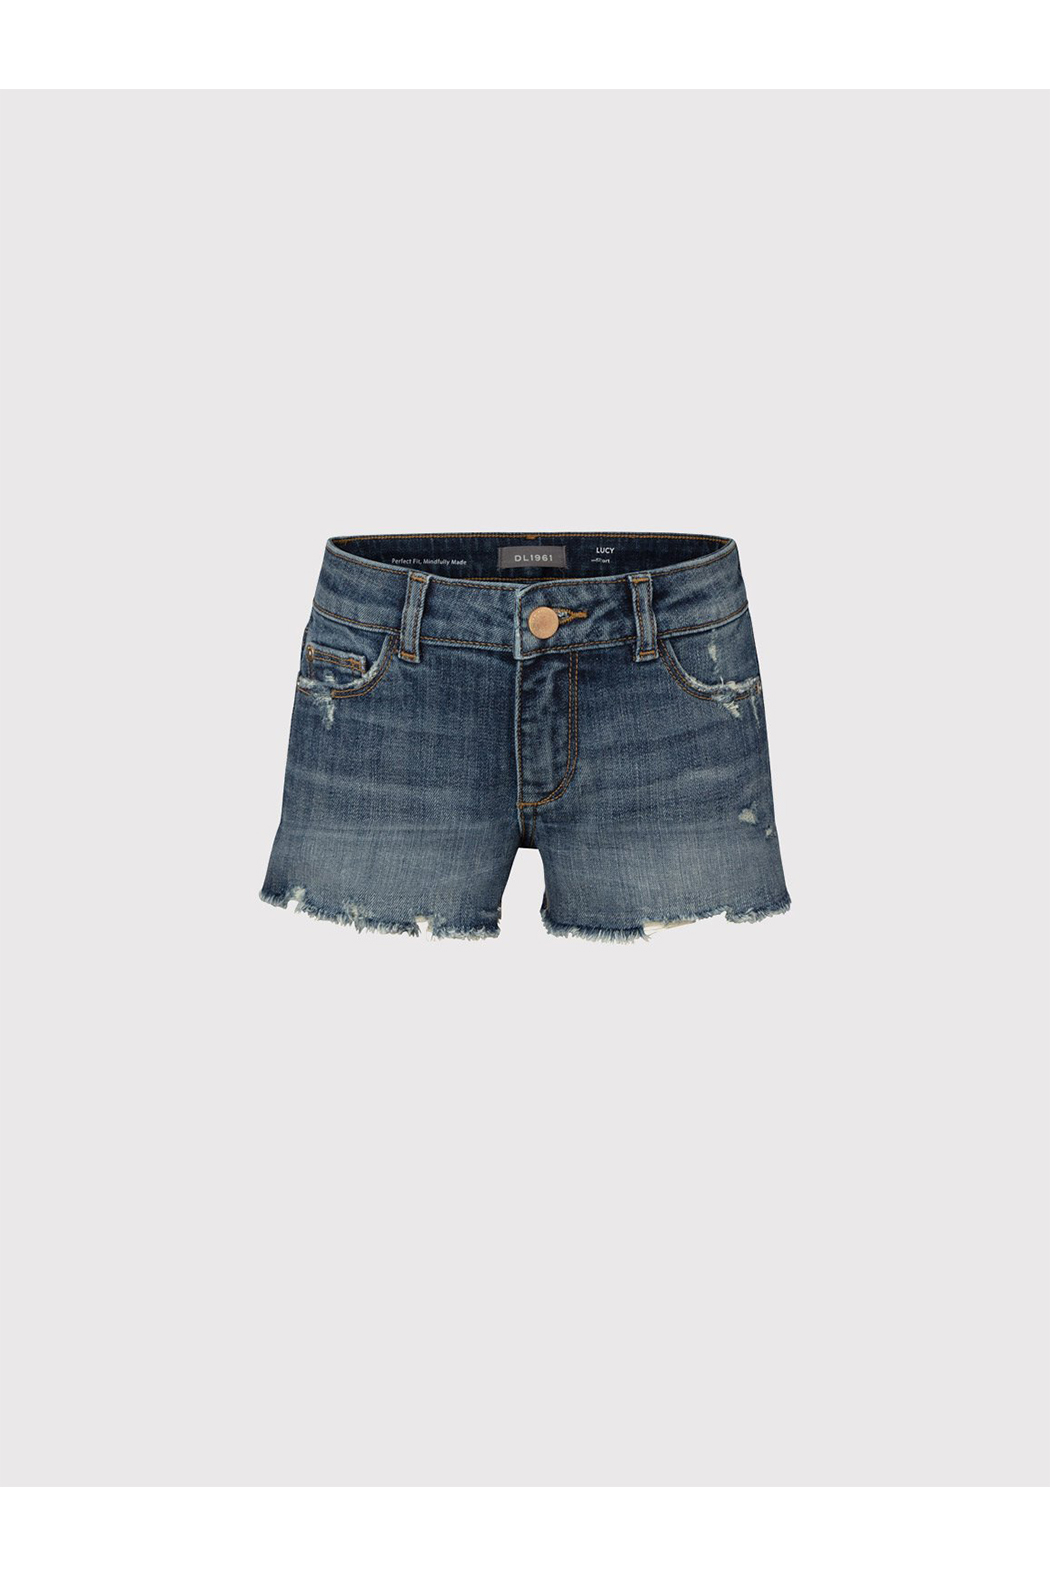 DL1961 Lucy Youth Denim Shorts - Main Image